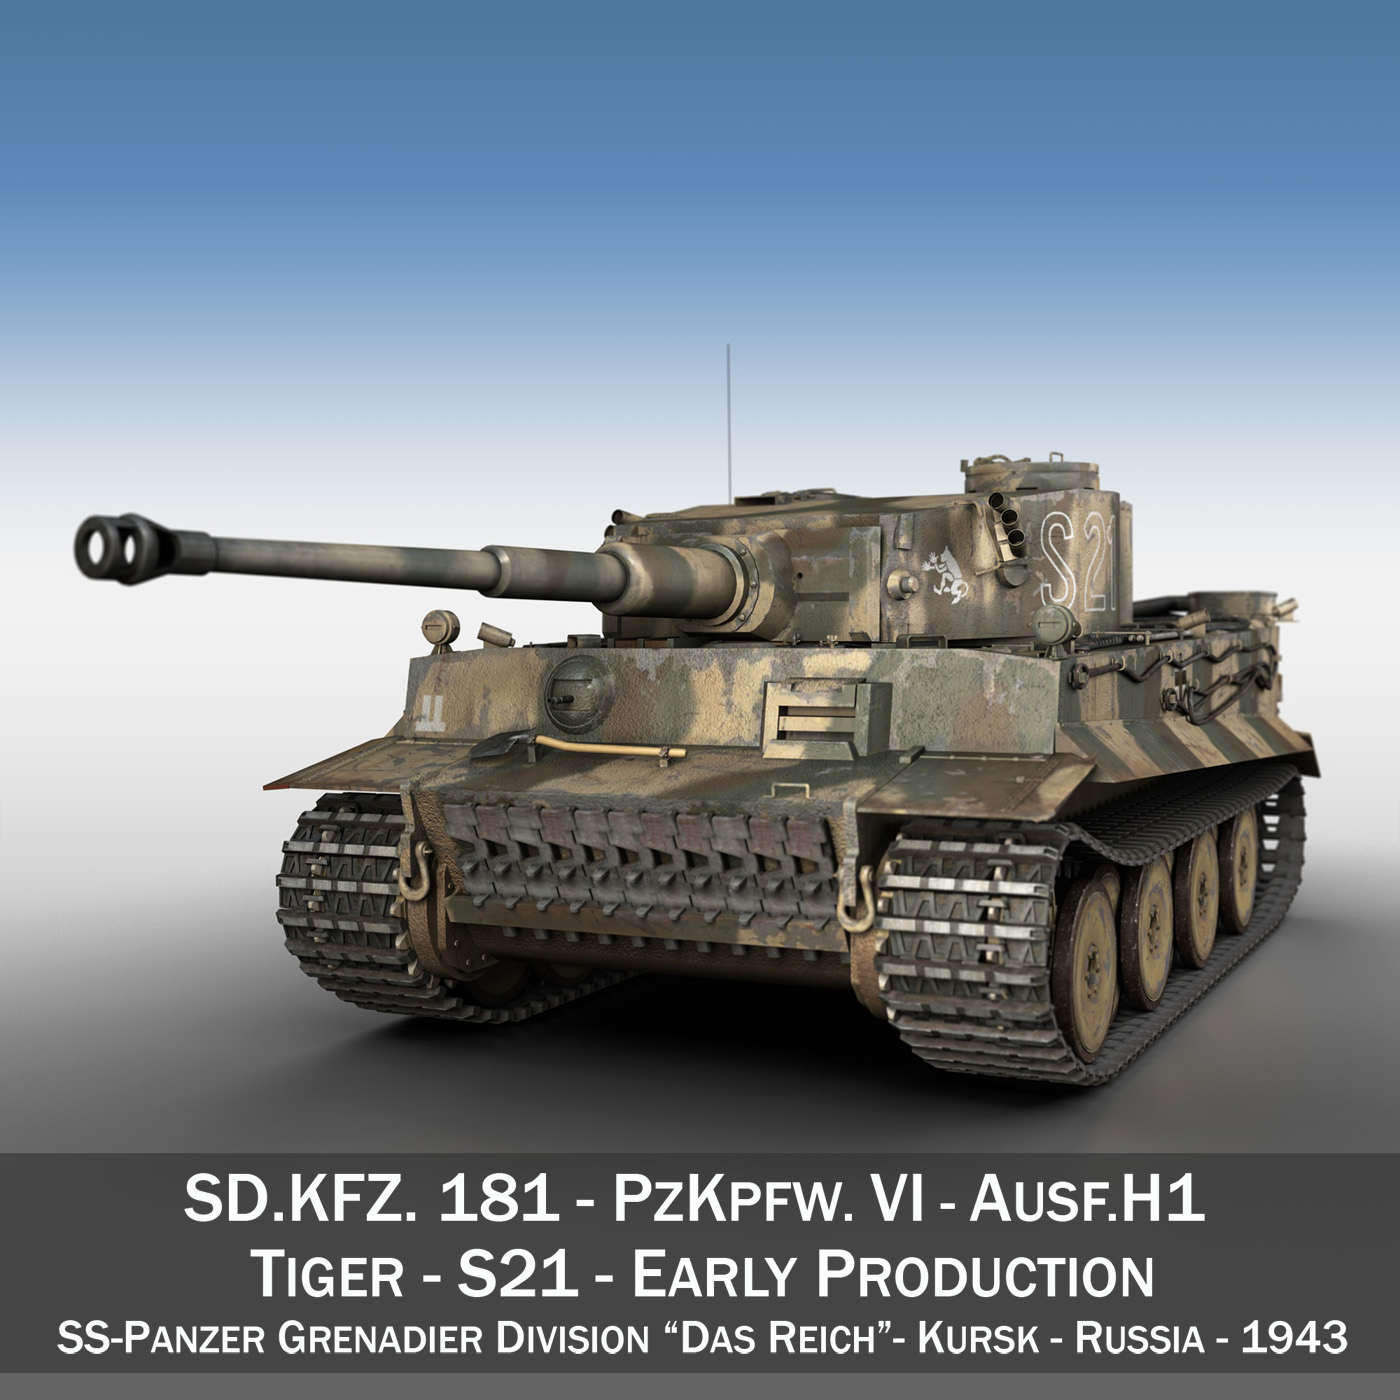 Panzer VI - Tiger - S21 - Early Production 3d model 3ds c4d lwo lws lw 279369